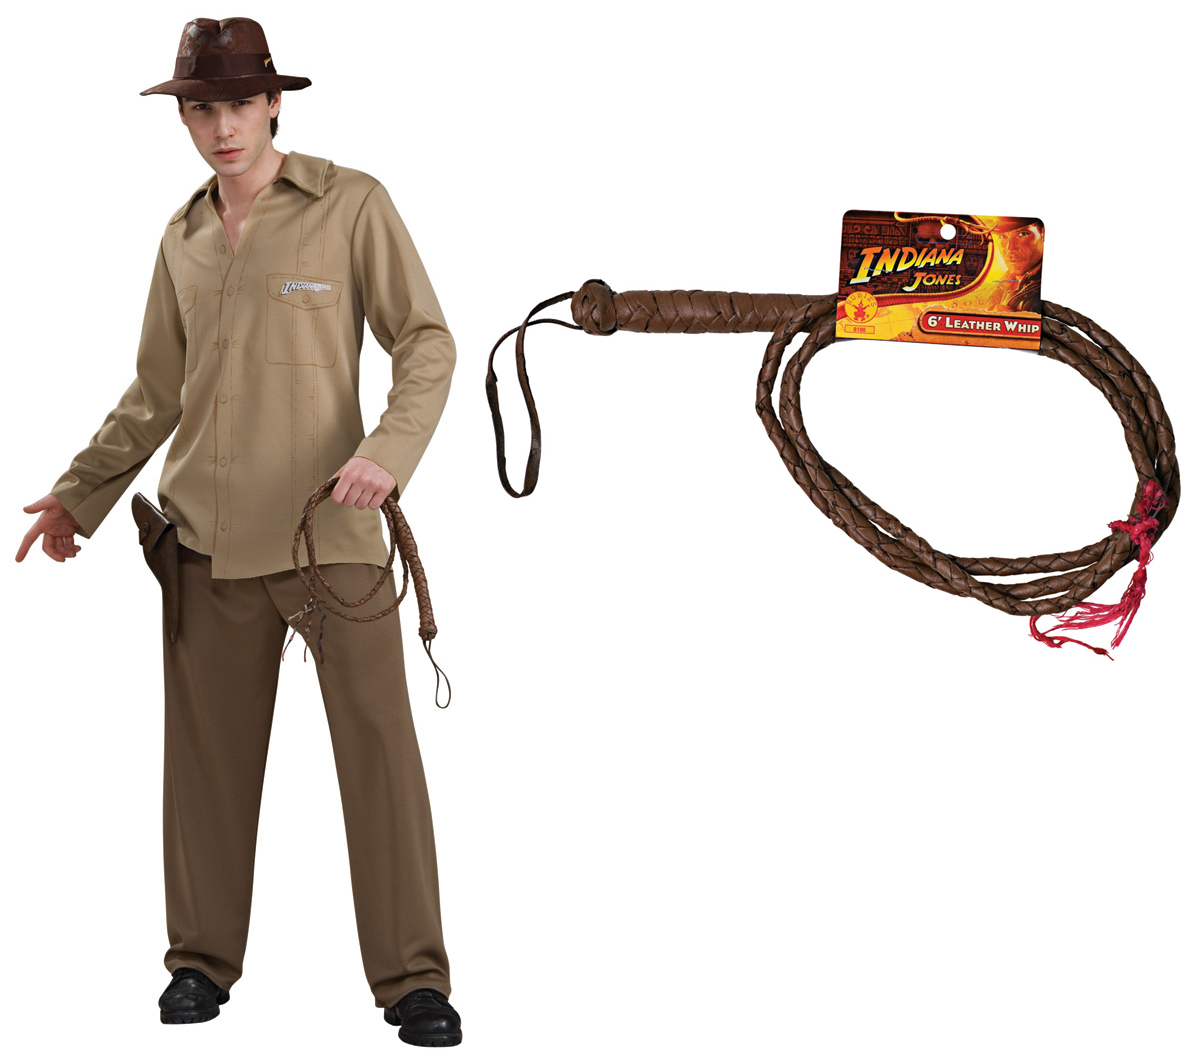 Indiana Jones Adult Costume STD, XL + Leather Whip